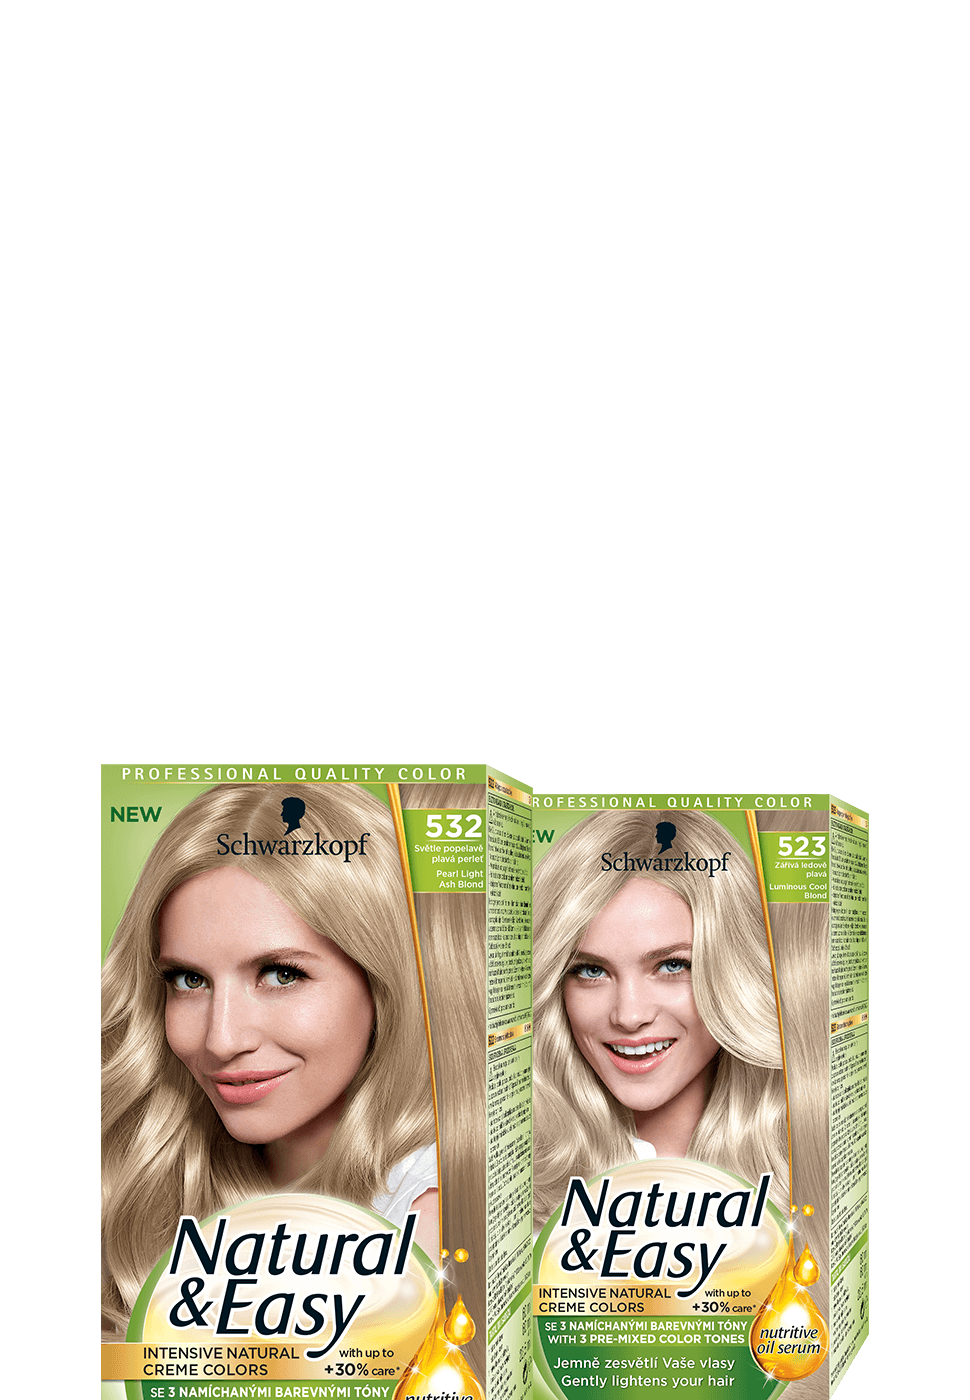 natural_easy_com_blond_overlay_970x1400